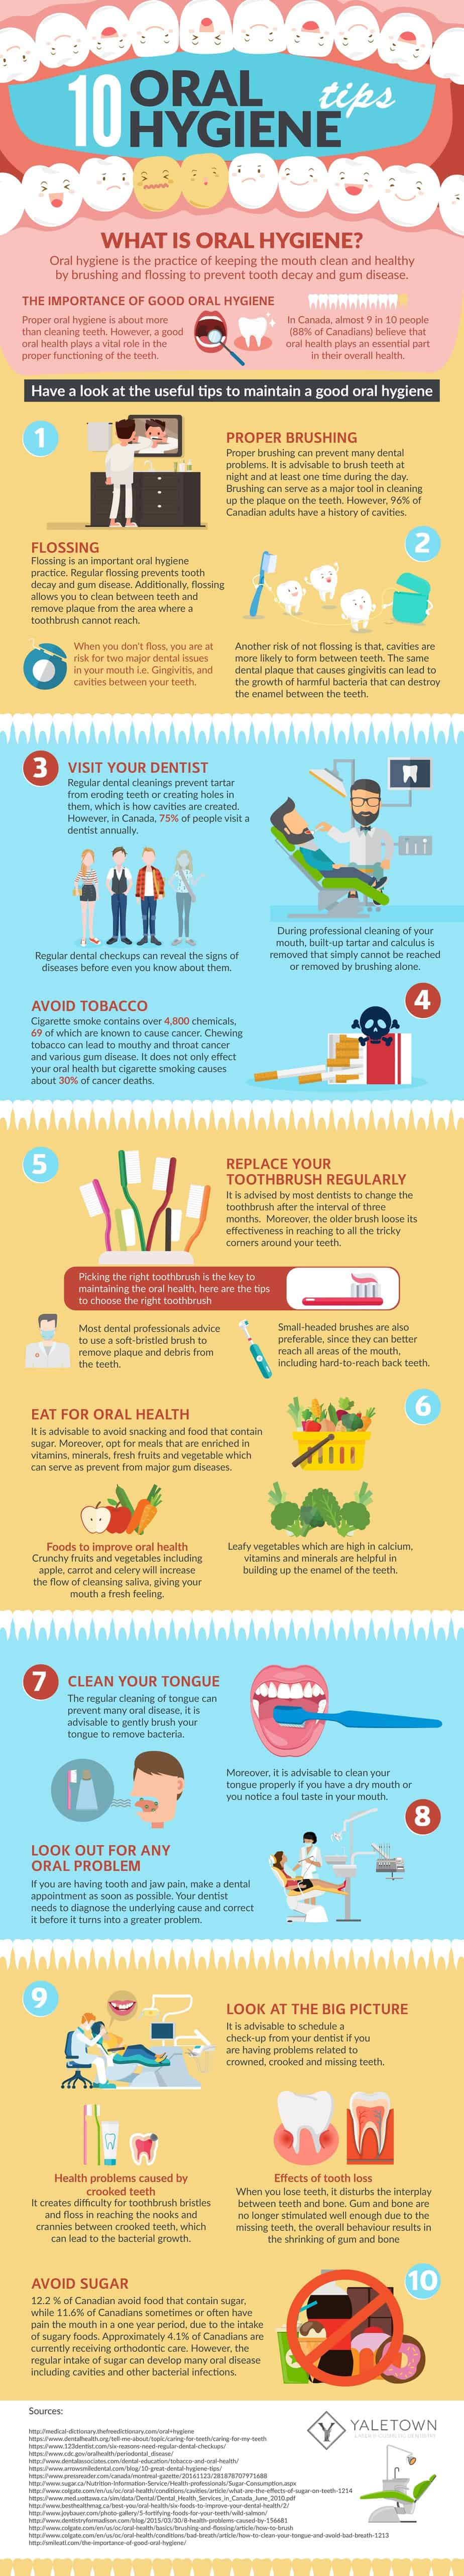 10 Cool Oral Hygiene Tips For A Healthy Mouth